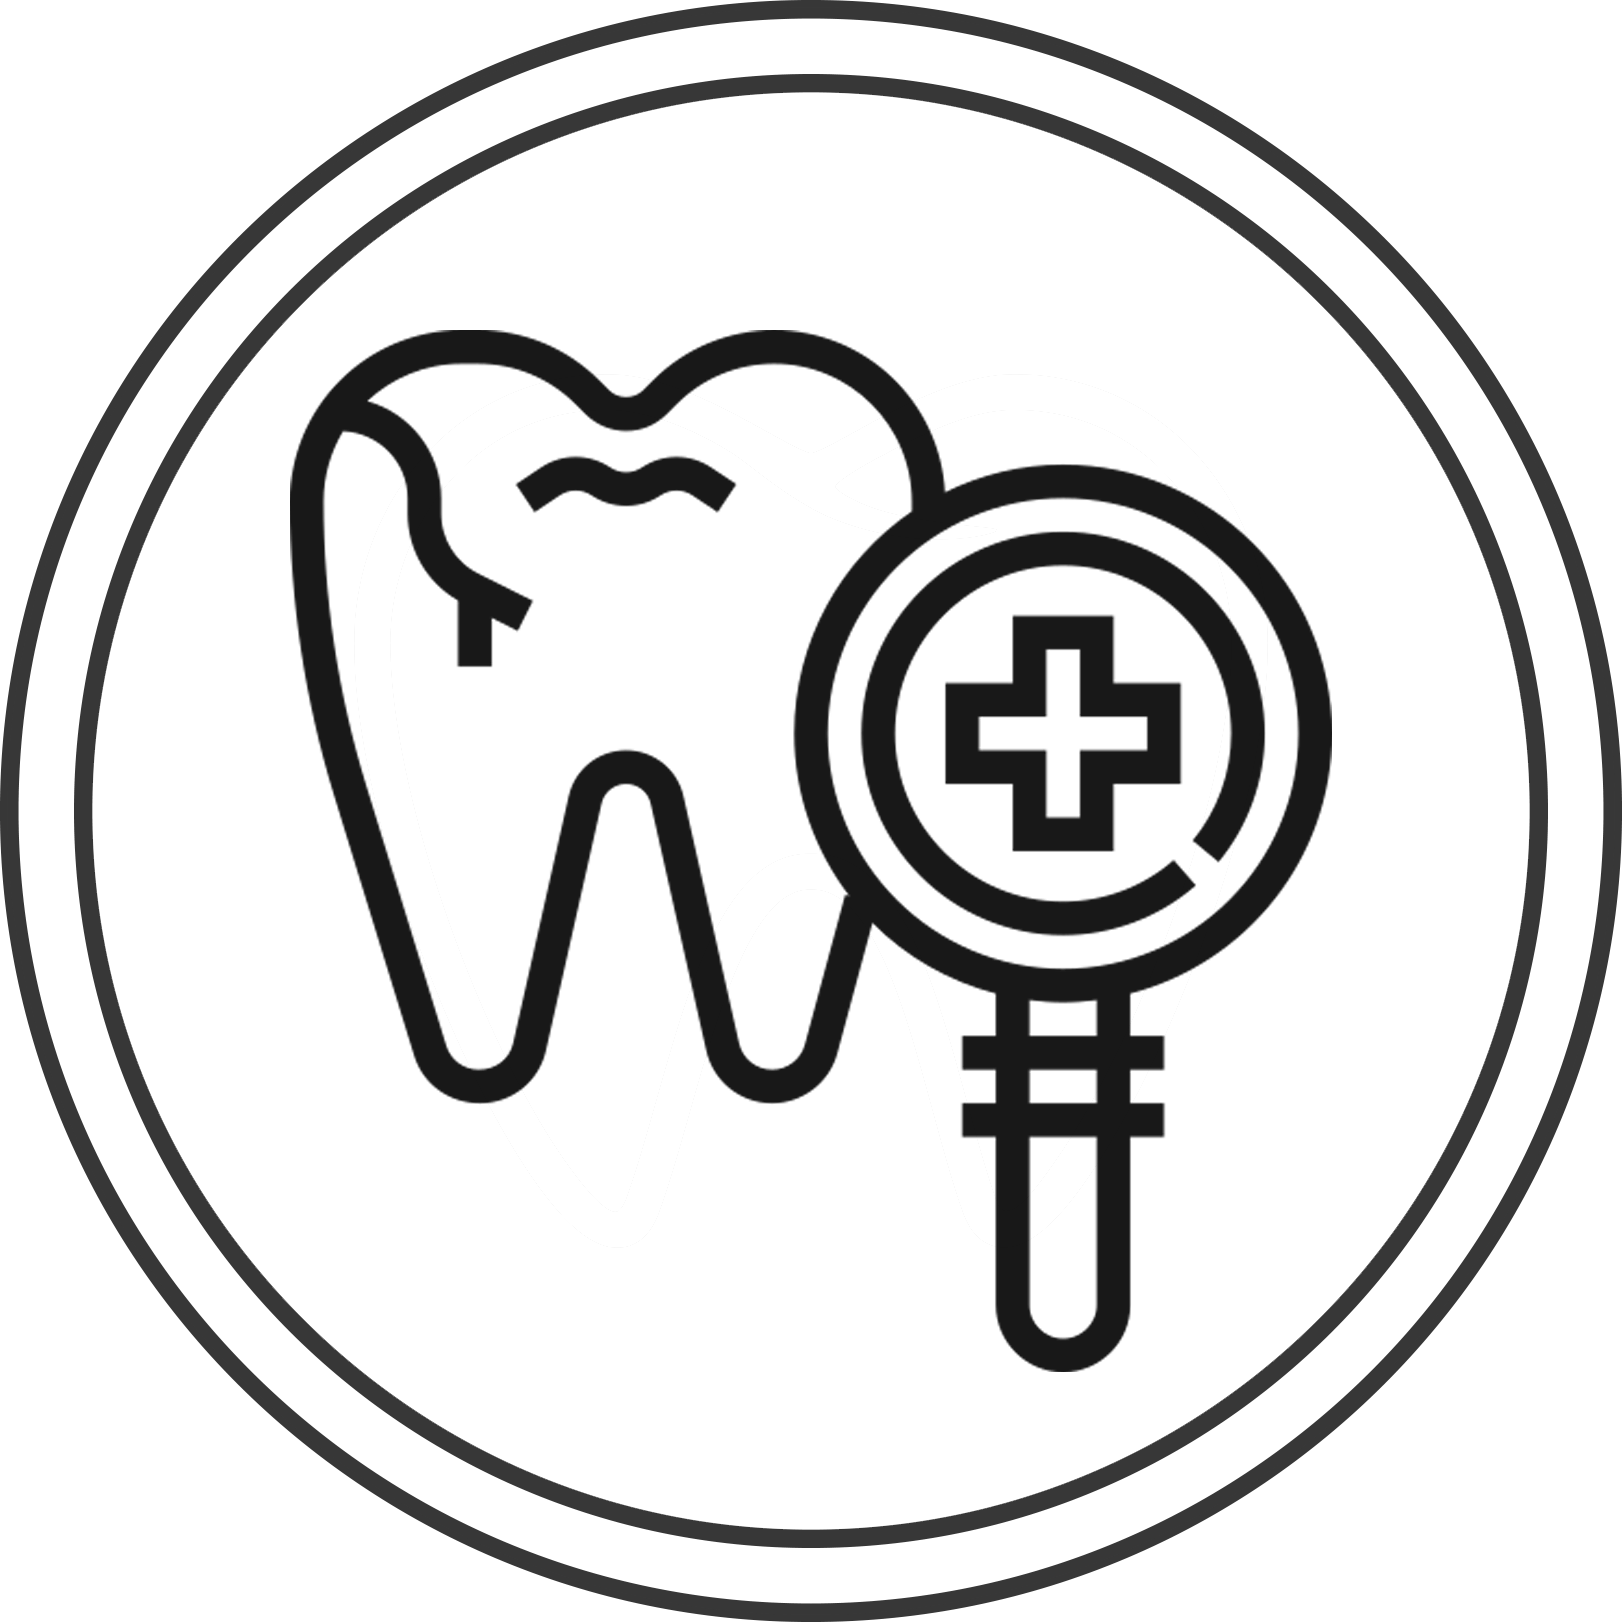 Dentists in Garwood, NJ | Cosmetic & Dental Implants | The Smilist